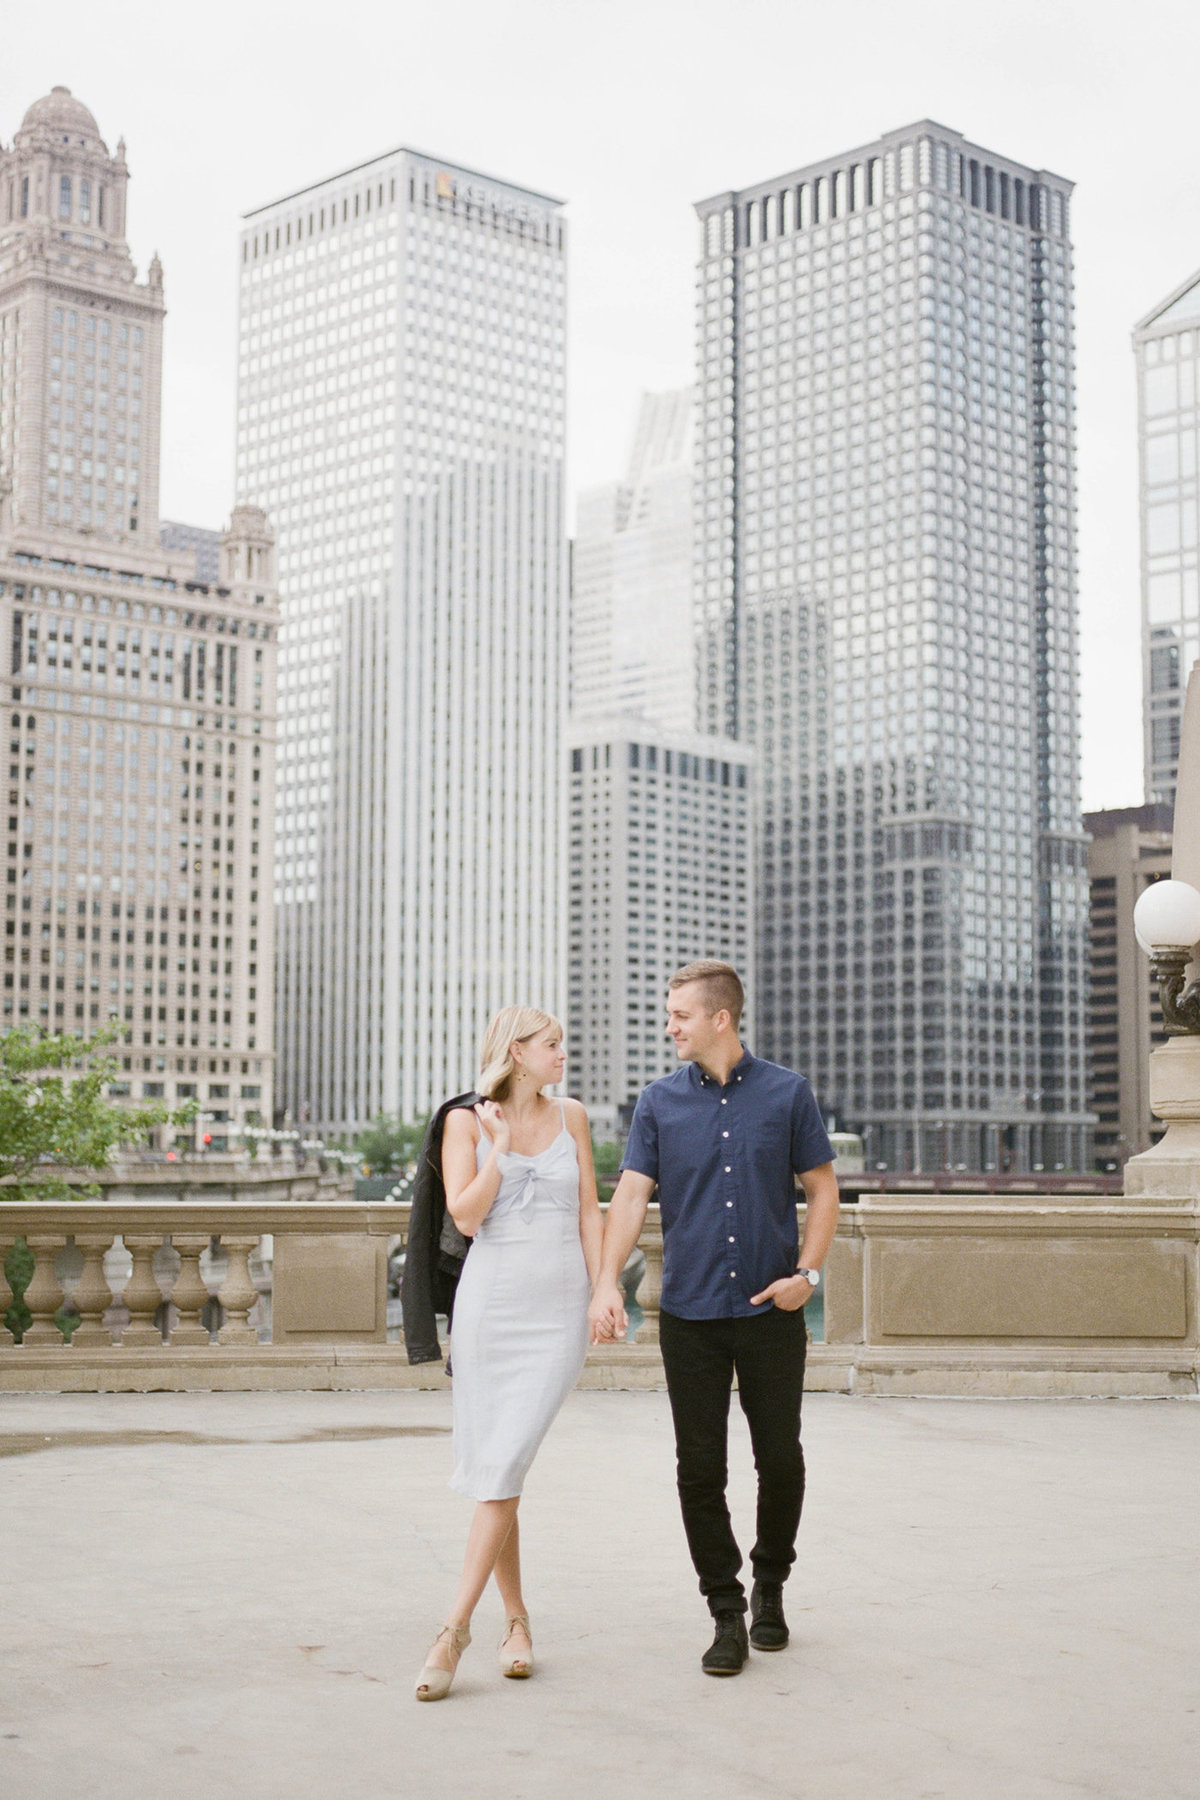 Chicago Wedding Photographer - Fine Art Film Photographer - Sarah Sunstrom - Sam + Morgan - Engagement Session - 30